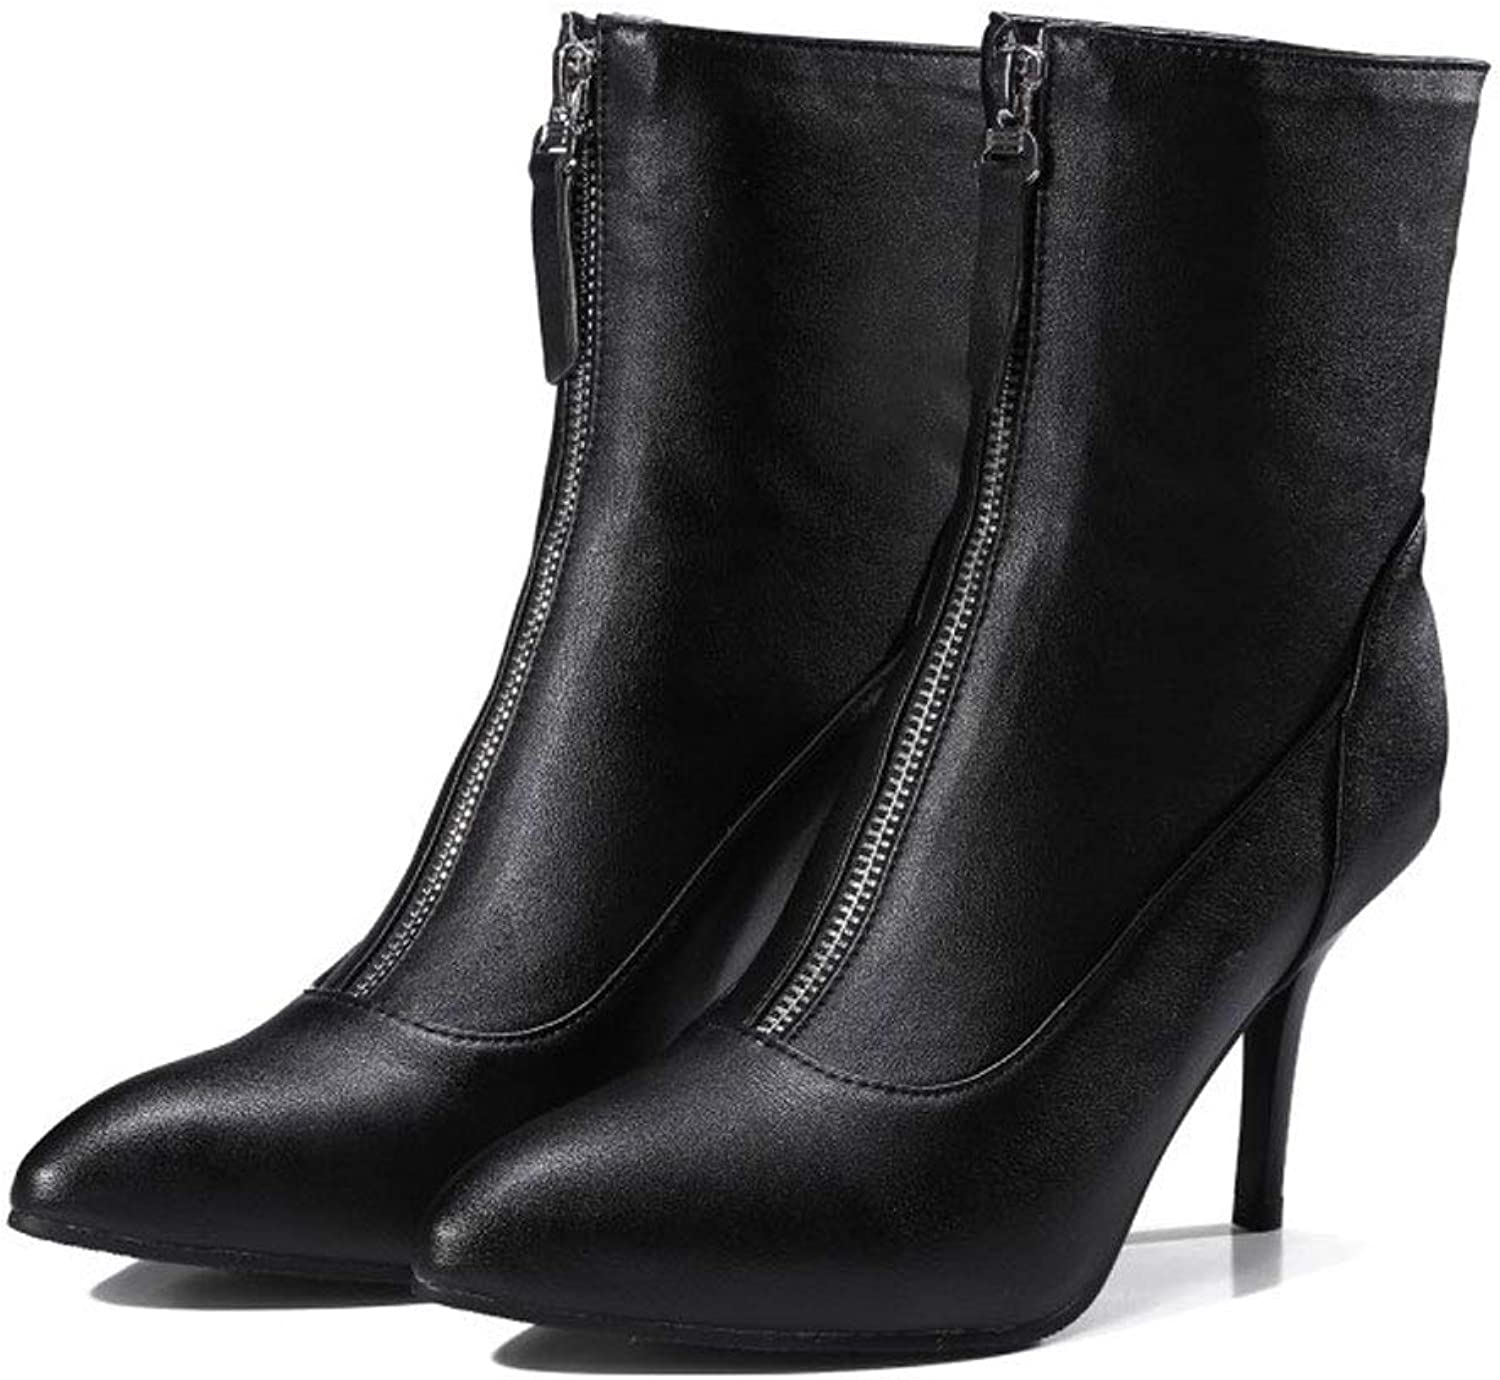 High Heel Ankle Boots, Women's Short Boots Stiletto Pointed Zipper Low Tube Martin Boots Waterproof Platform Non-Slip Women's Party, Work, Dress Boots